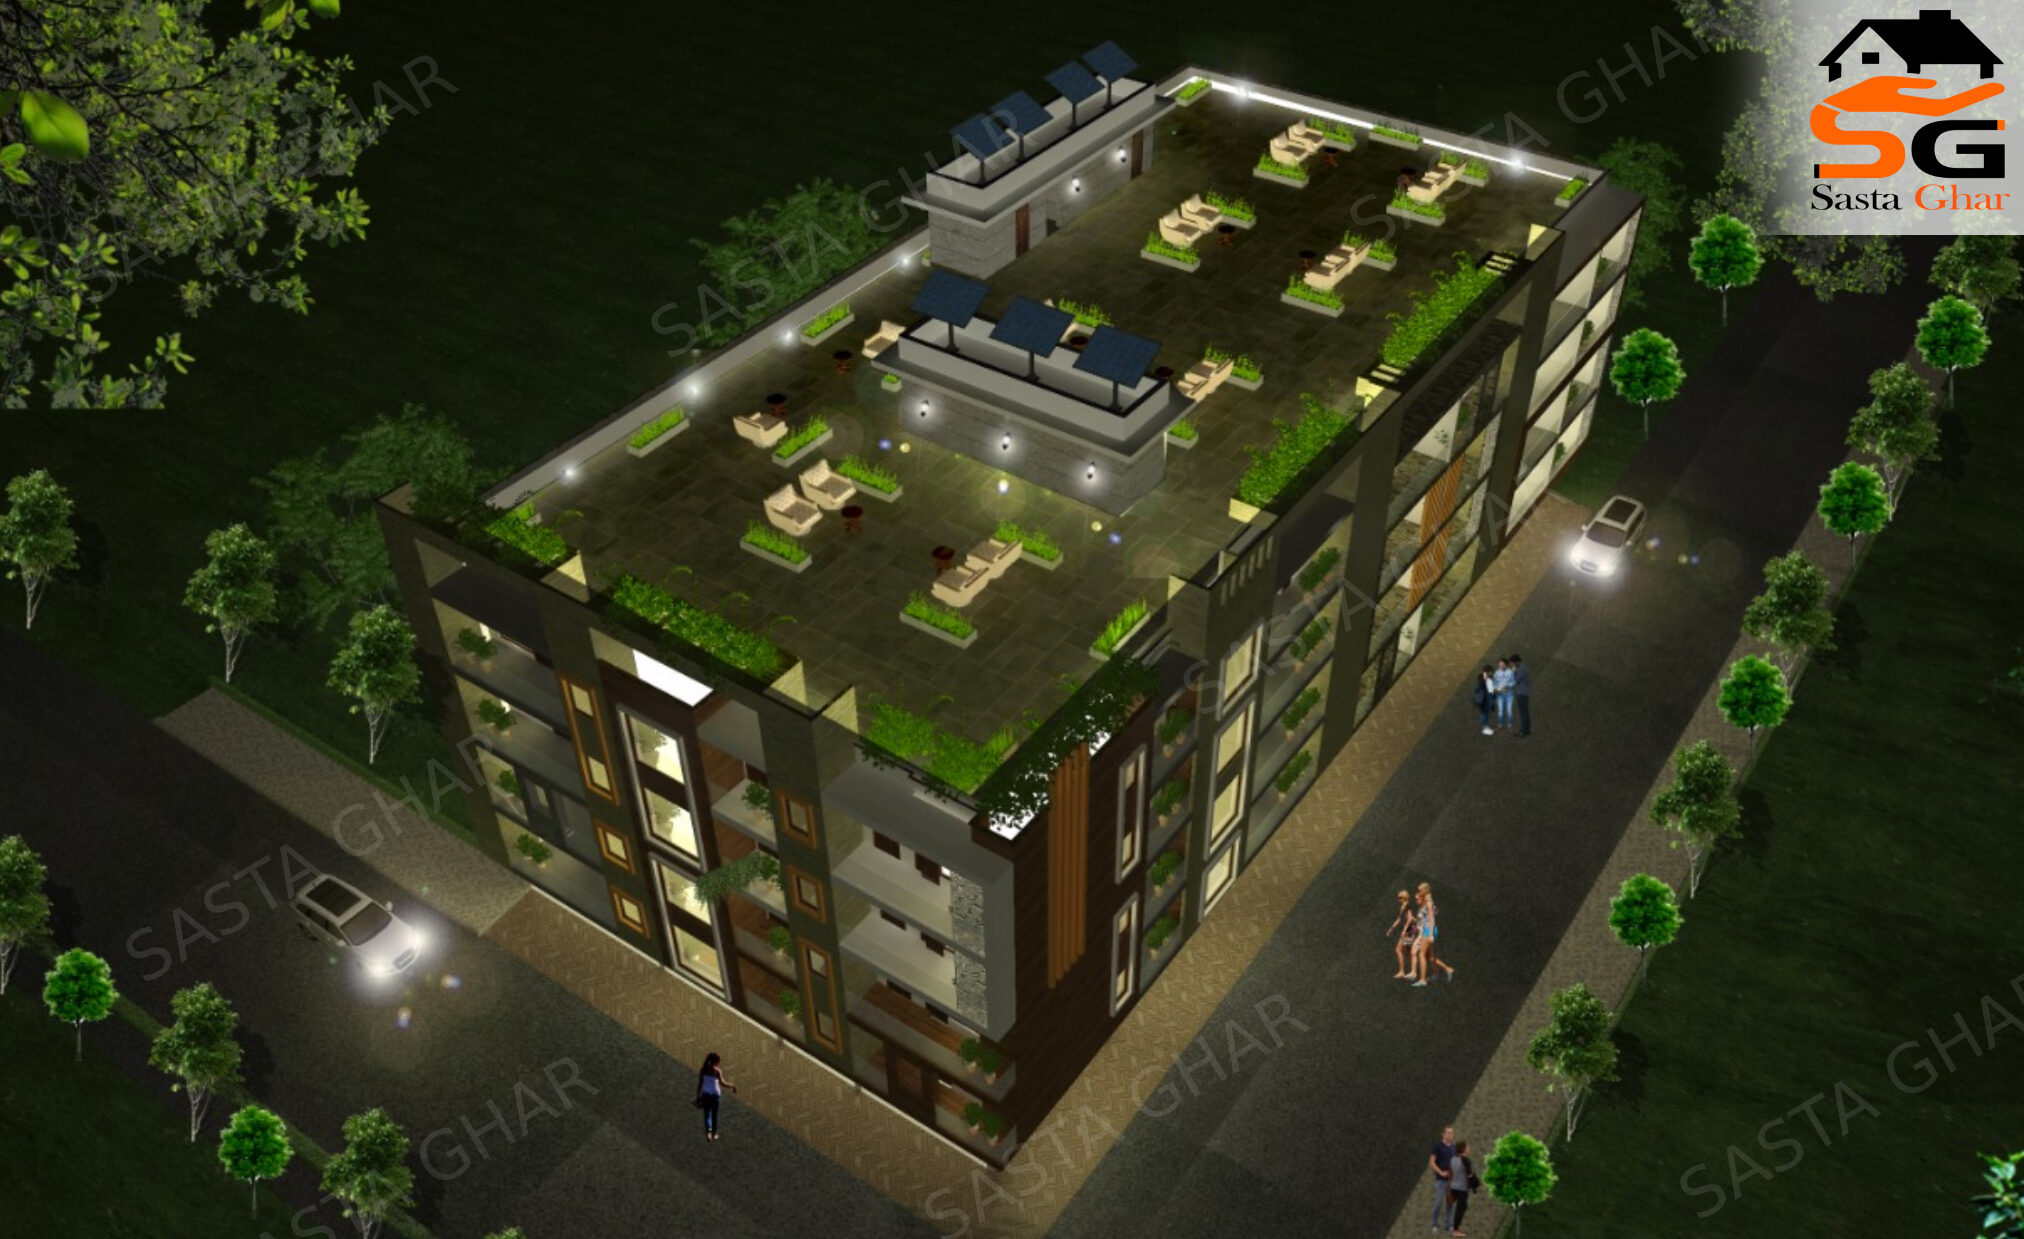 3 bhk Registry Flats in Chattarpur Image